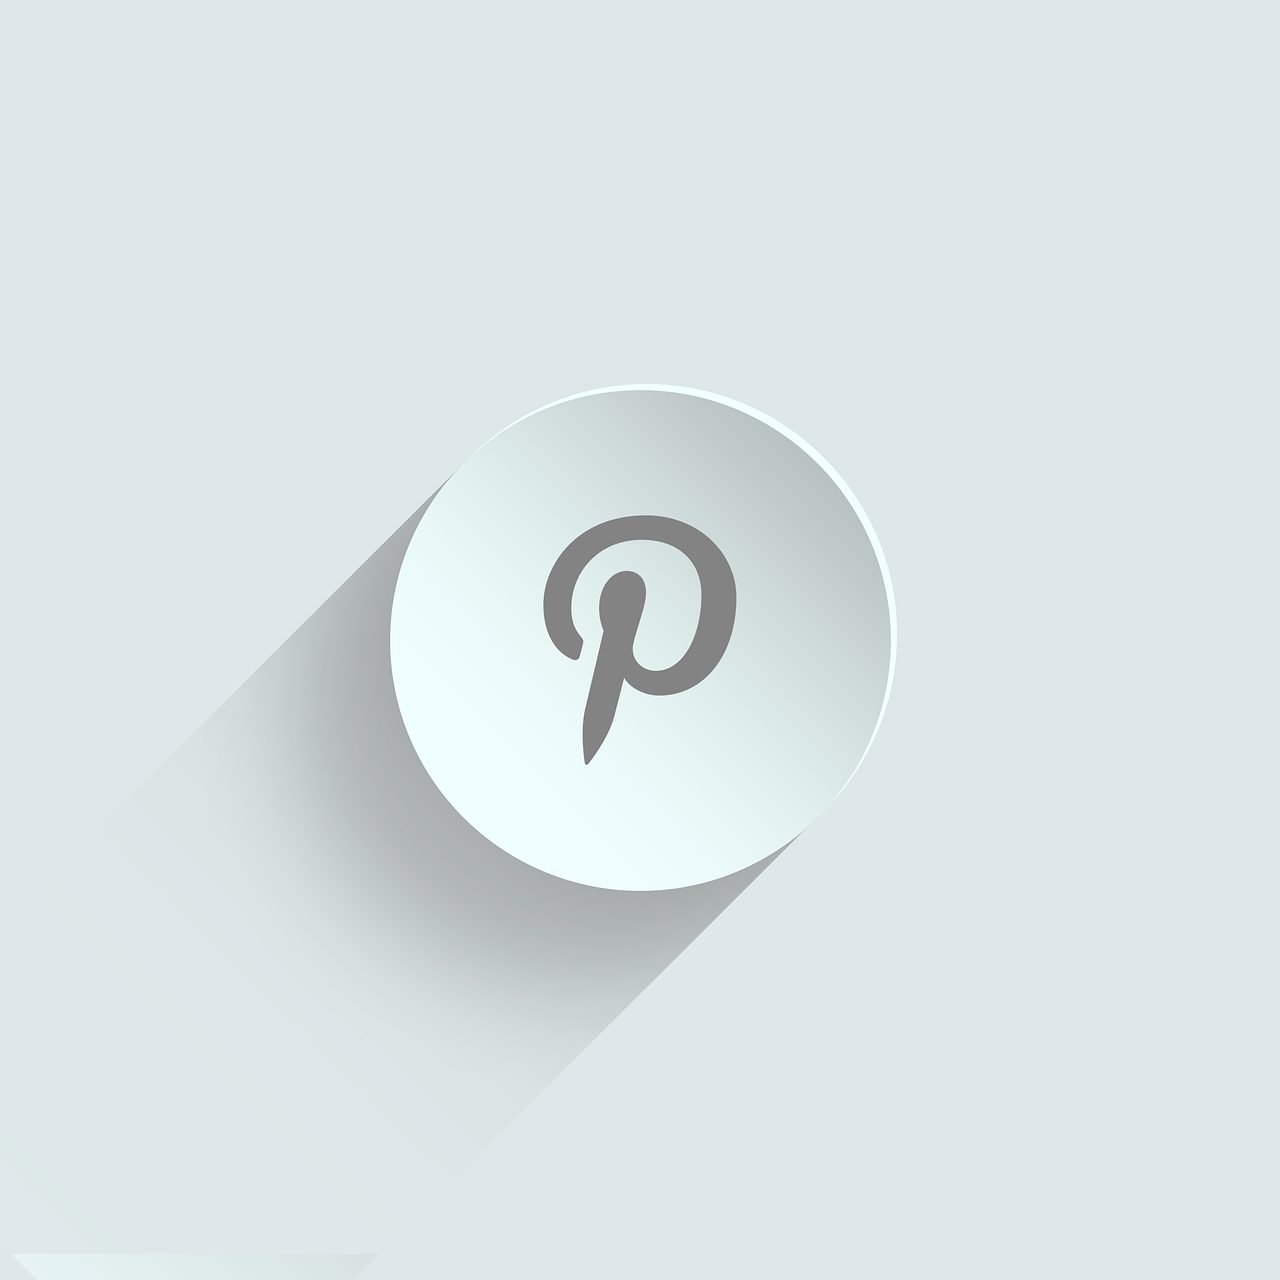 "Known as the underdog in social media behind Facebook and Twitter, Pinterest is gaining muscle in the world of social media marketing.  Coming on to the scene in 2009, Pinterest is a photo sharing website that allows users to create pinboards to organize their photos based on specific themes such as food, clothing and do-it-yourself activities.  With the right tools, Pinterest can be an extremely useful and profitable marketing tool for businesses as a lot of referral traffic can be obtained through the site.   The Selling Point of Pinterest   People are visual creatures and they like to see beautiful and interesting photos. People will post photos of things they find interesting and will share these images with their friends via pinboards. They key with this is to share captivating photos and allow them to be shared by many people very often. Each photo is a link to the source of the image -- i.e. the business website thus leading potential customers directly to the site.   Build A Following & Keep Them Coming Back   Again, people enjoy attractive images. The first step in gaining followers on Pinterest is to create an attractive account. People tend to be more inclined to follow an individual versus a business as an individual tends to be more believable unless the brand is well-known.  Create unique board names such as ""Tomato Gardens"" ""Strawberry Gardens"" and ""Lettuce Gardens"" as opposed to just ""Gardens."" When someone is searching for information in relation to a specific type of garden, the more specific information will populate thus leading to more pins and traffic to the business website.   Quality Matters   Using only high quality photos is vital to capturing customers. The image should appear professional with lighting to highlight the subject in the photo. The size of the image is also important because the image needs to be easily accessible by potential customers. Keep the resolution around 800 x 1000 pixels.  With millions of users on Pinterest every day, it is not that difficult to get a business name out there despite the high volume of pinned images. Keep in mind that people are on Pinterest to discover and learn new things. Take advantage of this and make this wonderful marketing tool work for your business.   Contact us    today to learn how we can help you with your social media marketing campaign."